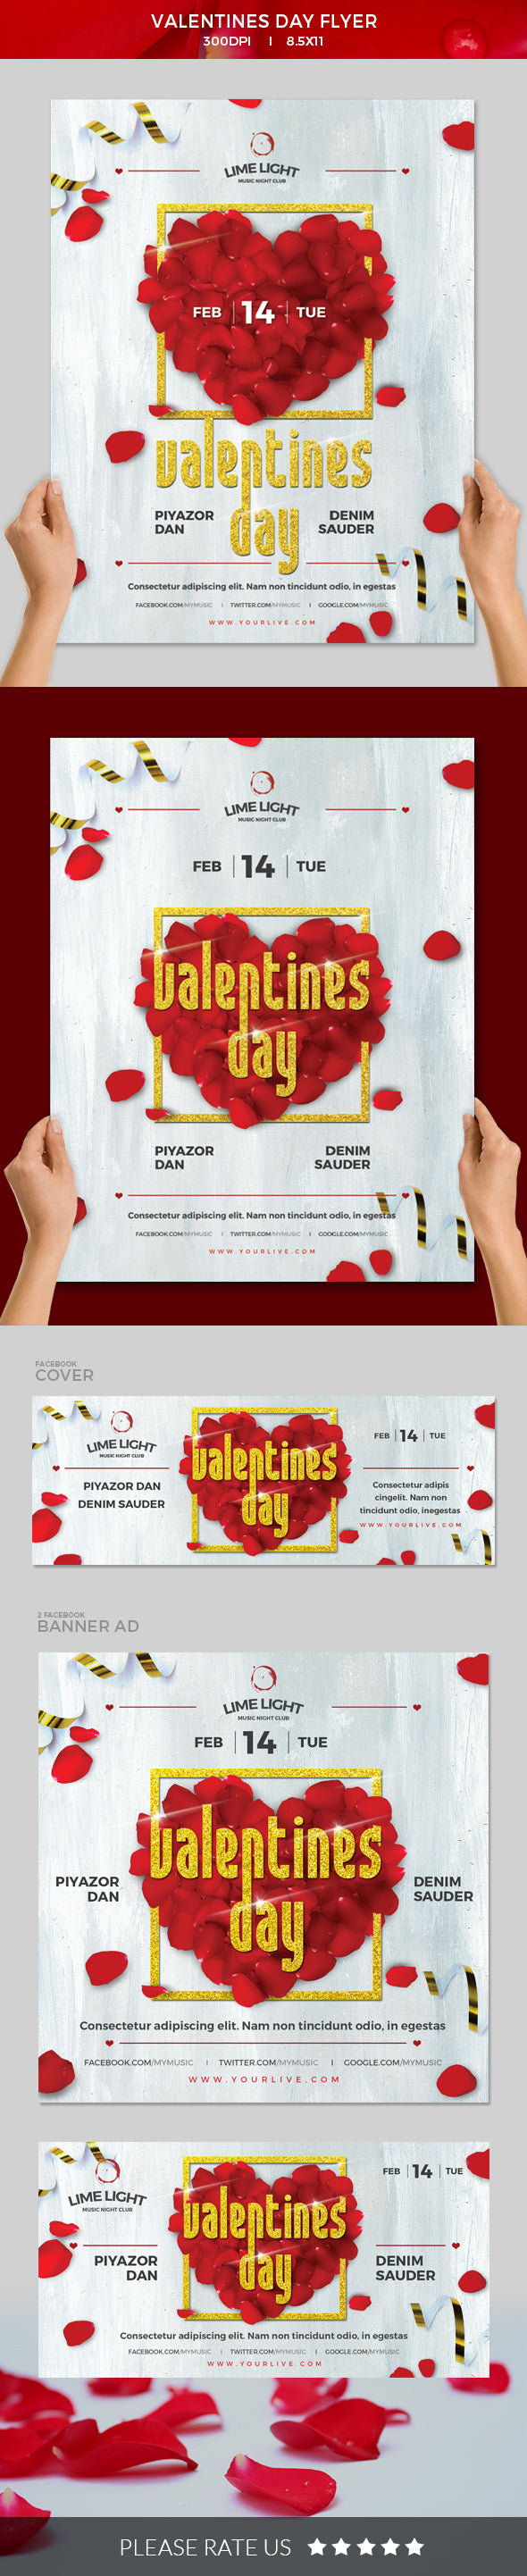 valentine day flyer